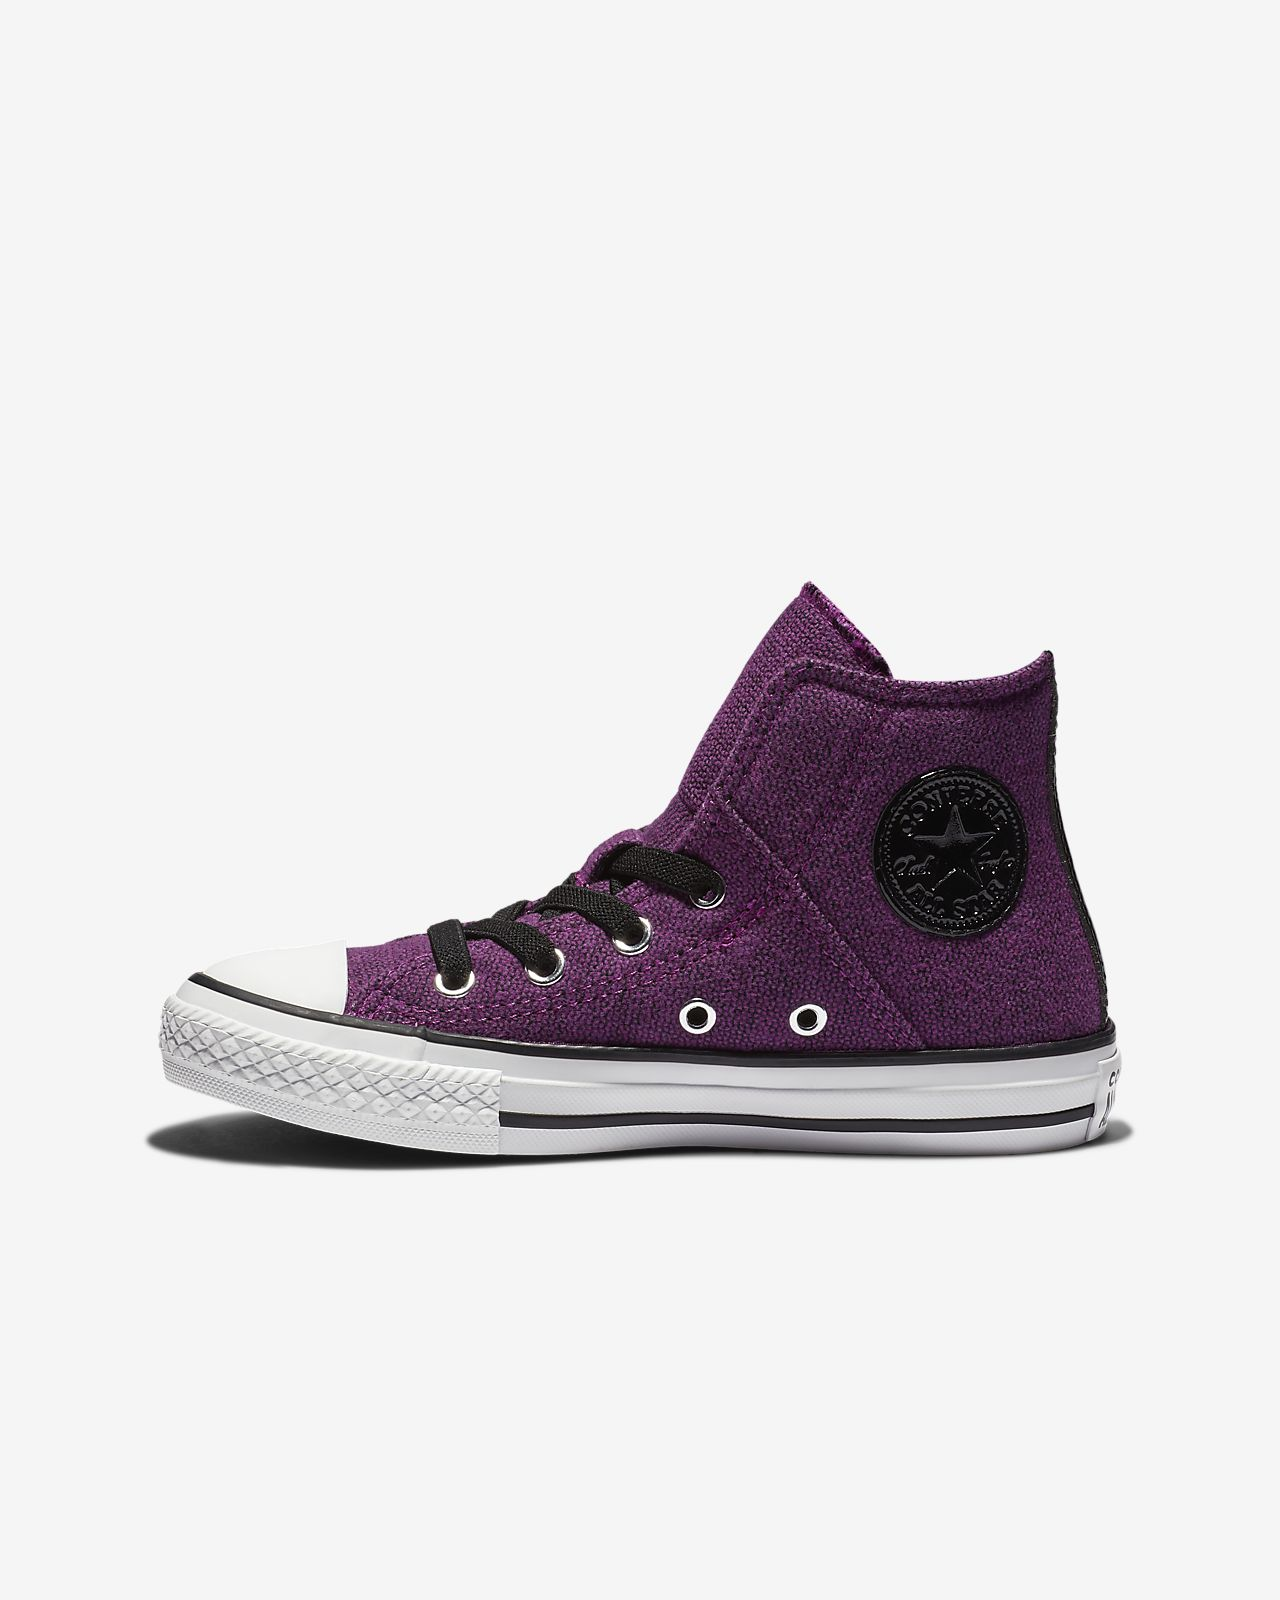 9e63f77eef5 reduced converse japan center zipper low slip on chuck taylor all star  august 2018 drop release hot converse chuck taylor all star pull zip great  outdoors ...